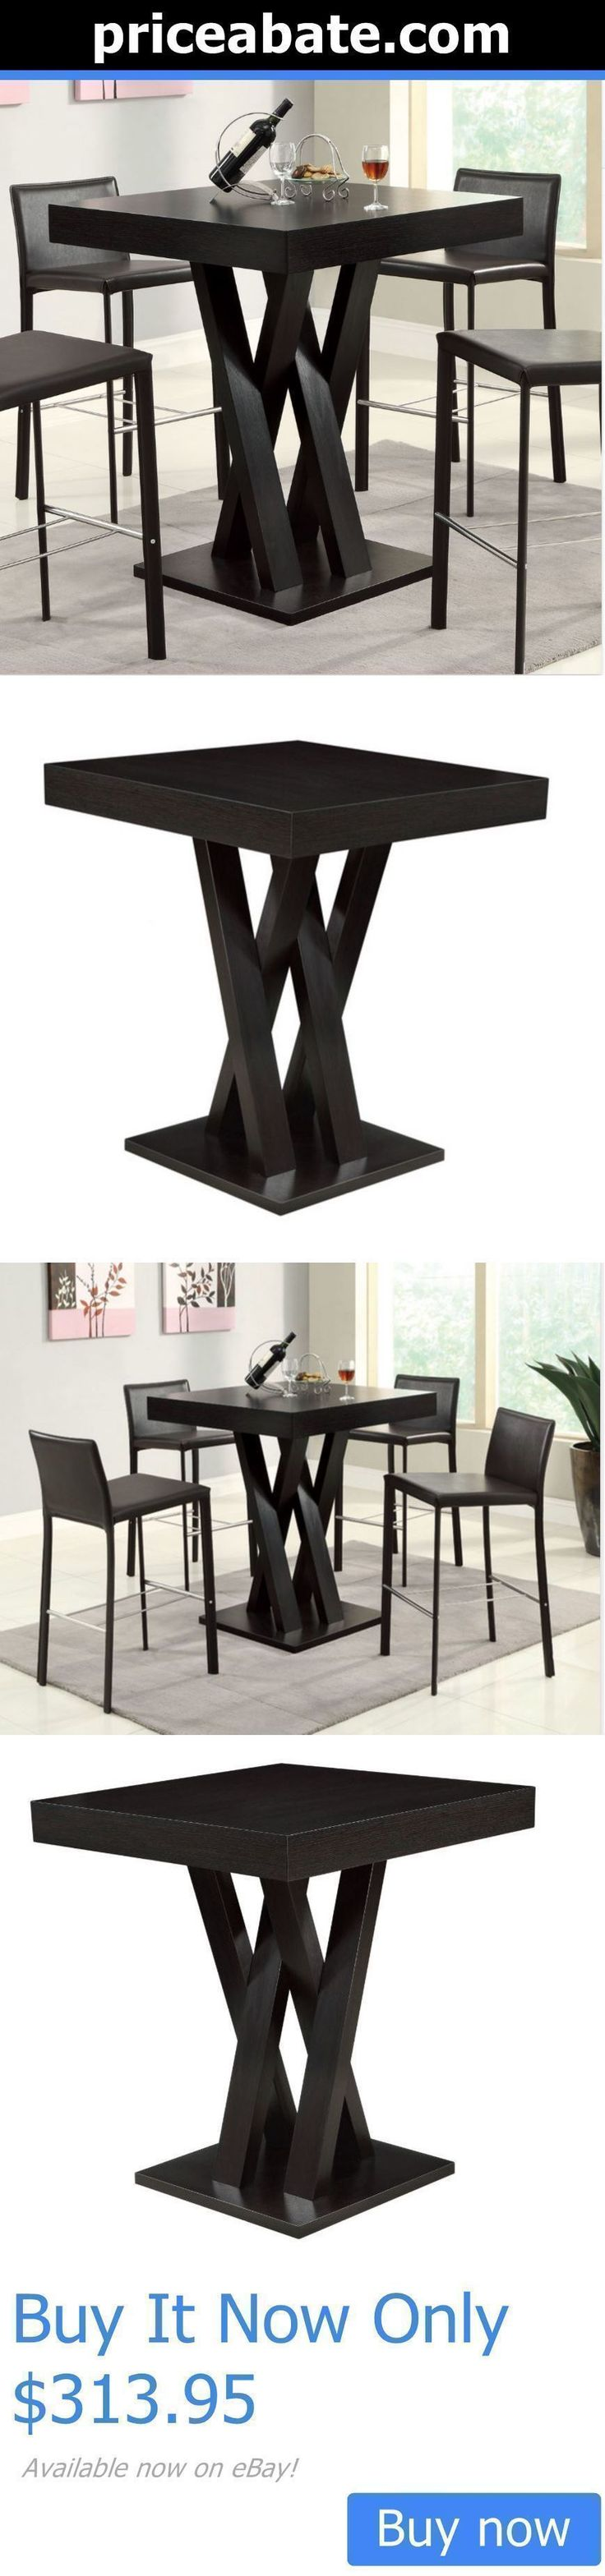 furniture: High Top Table Bar Height Dining Room Furniture Kitchen Counter Coffee BUY IT NOW ONLY: $313.95 #priceabatefurniture OR #priceabate